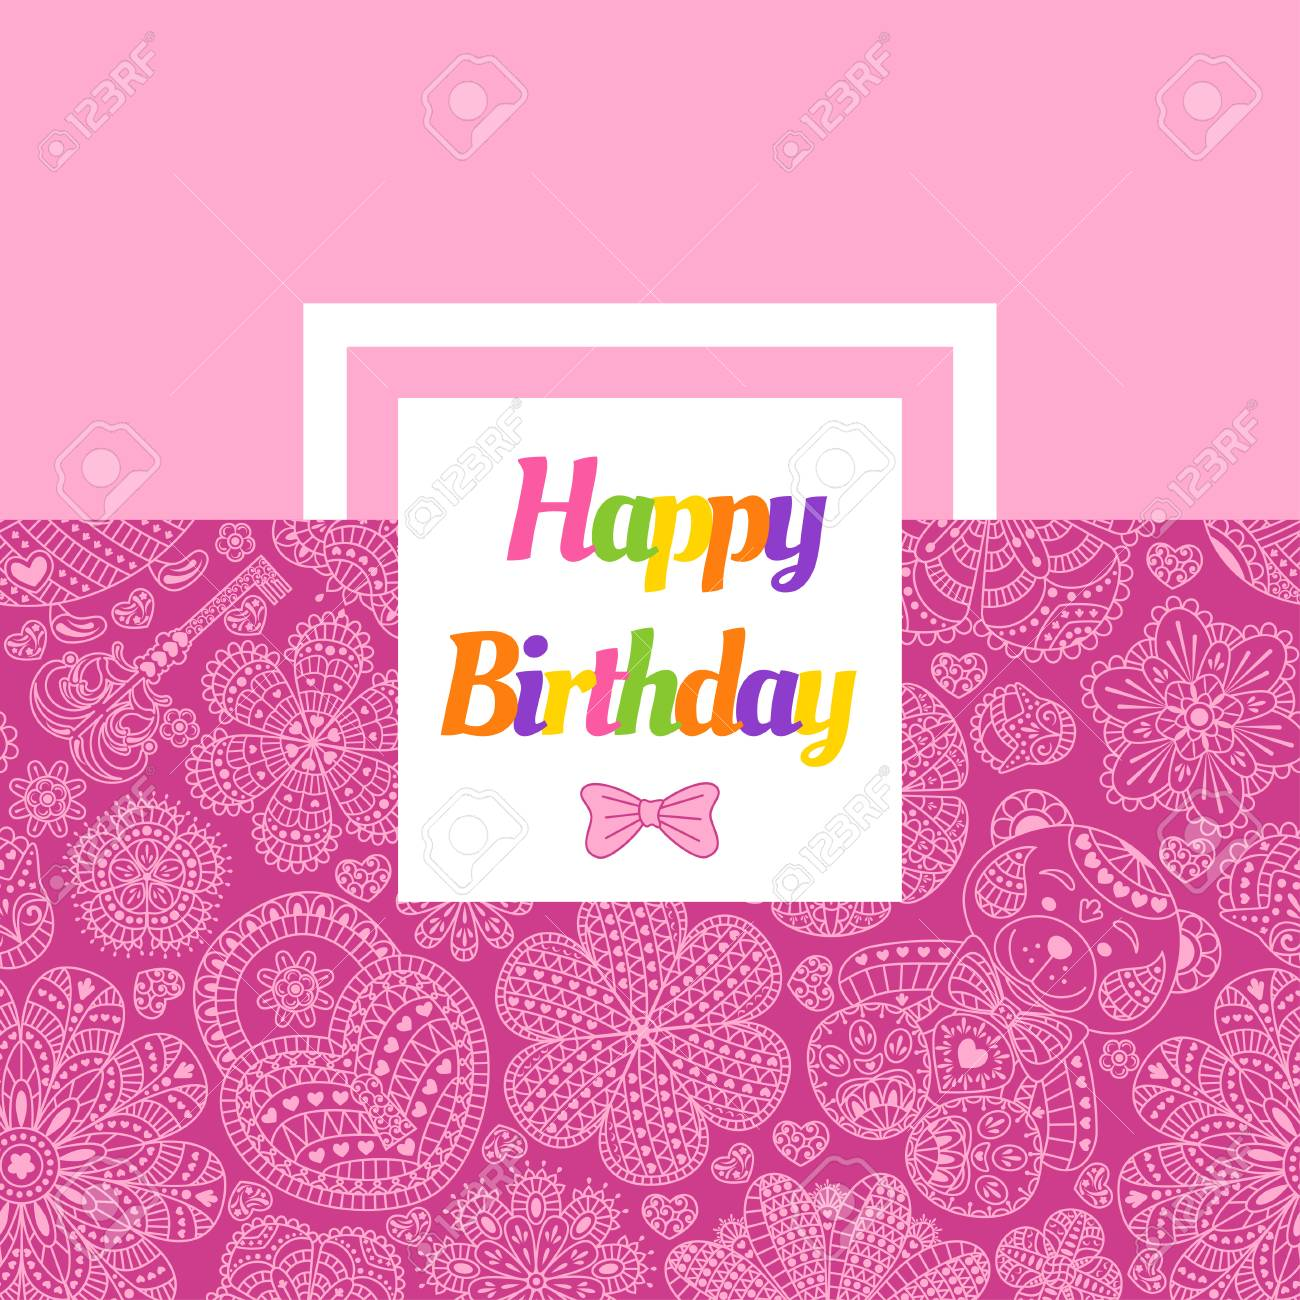 Birthday Card With Flowers Hearts Bear And Key Text Happy